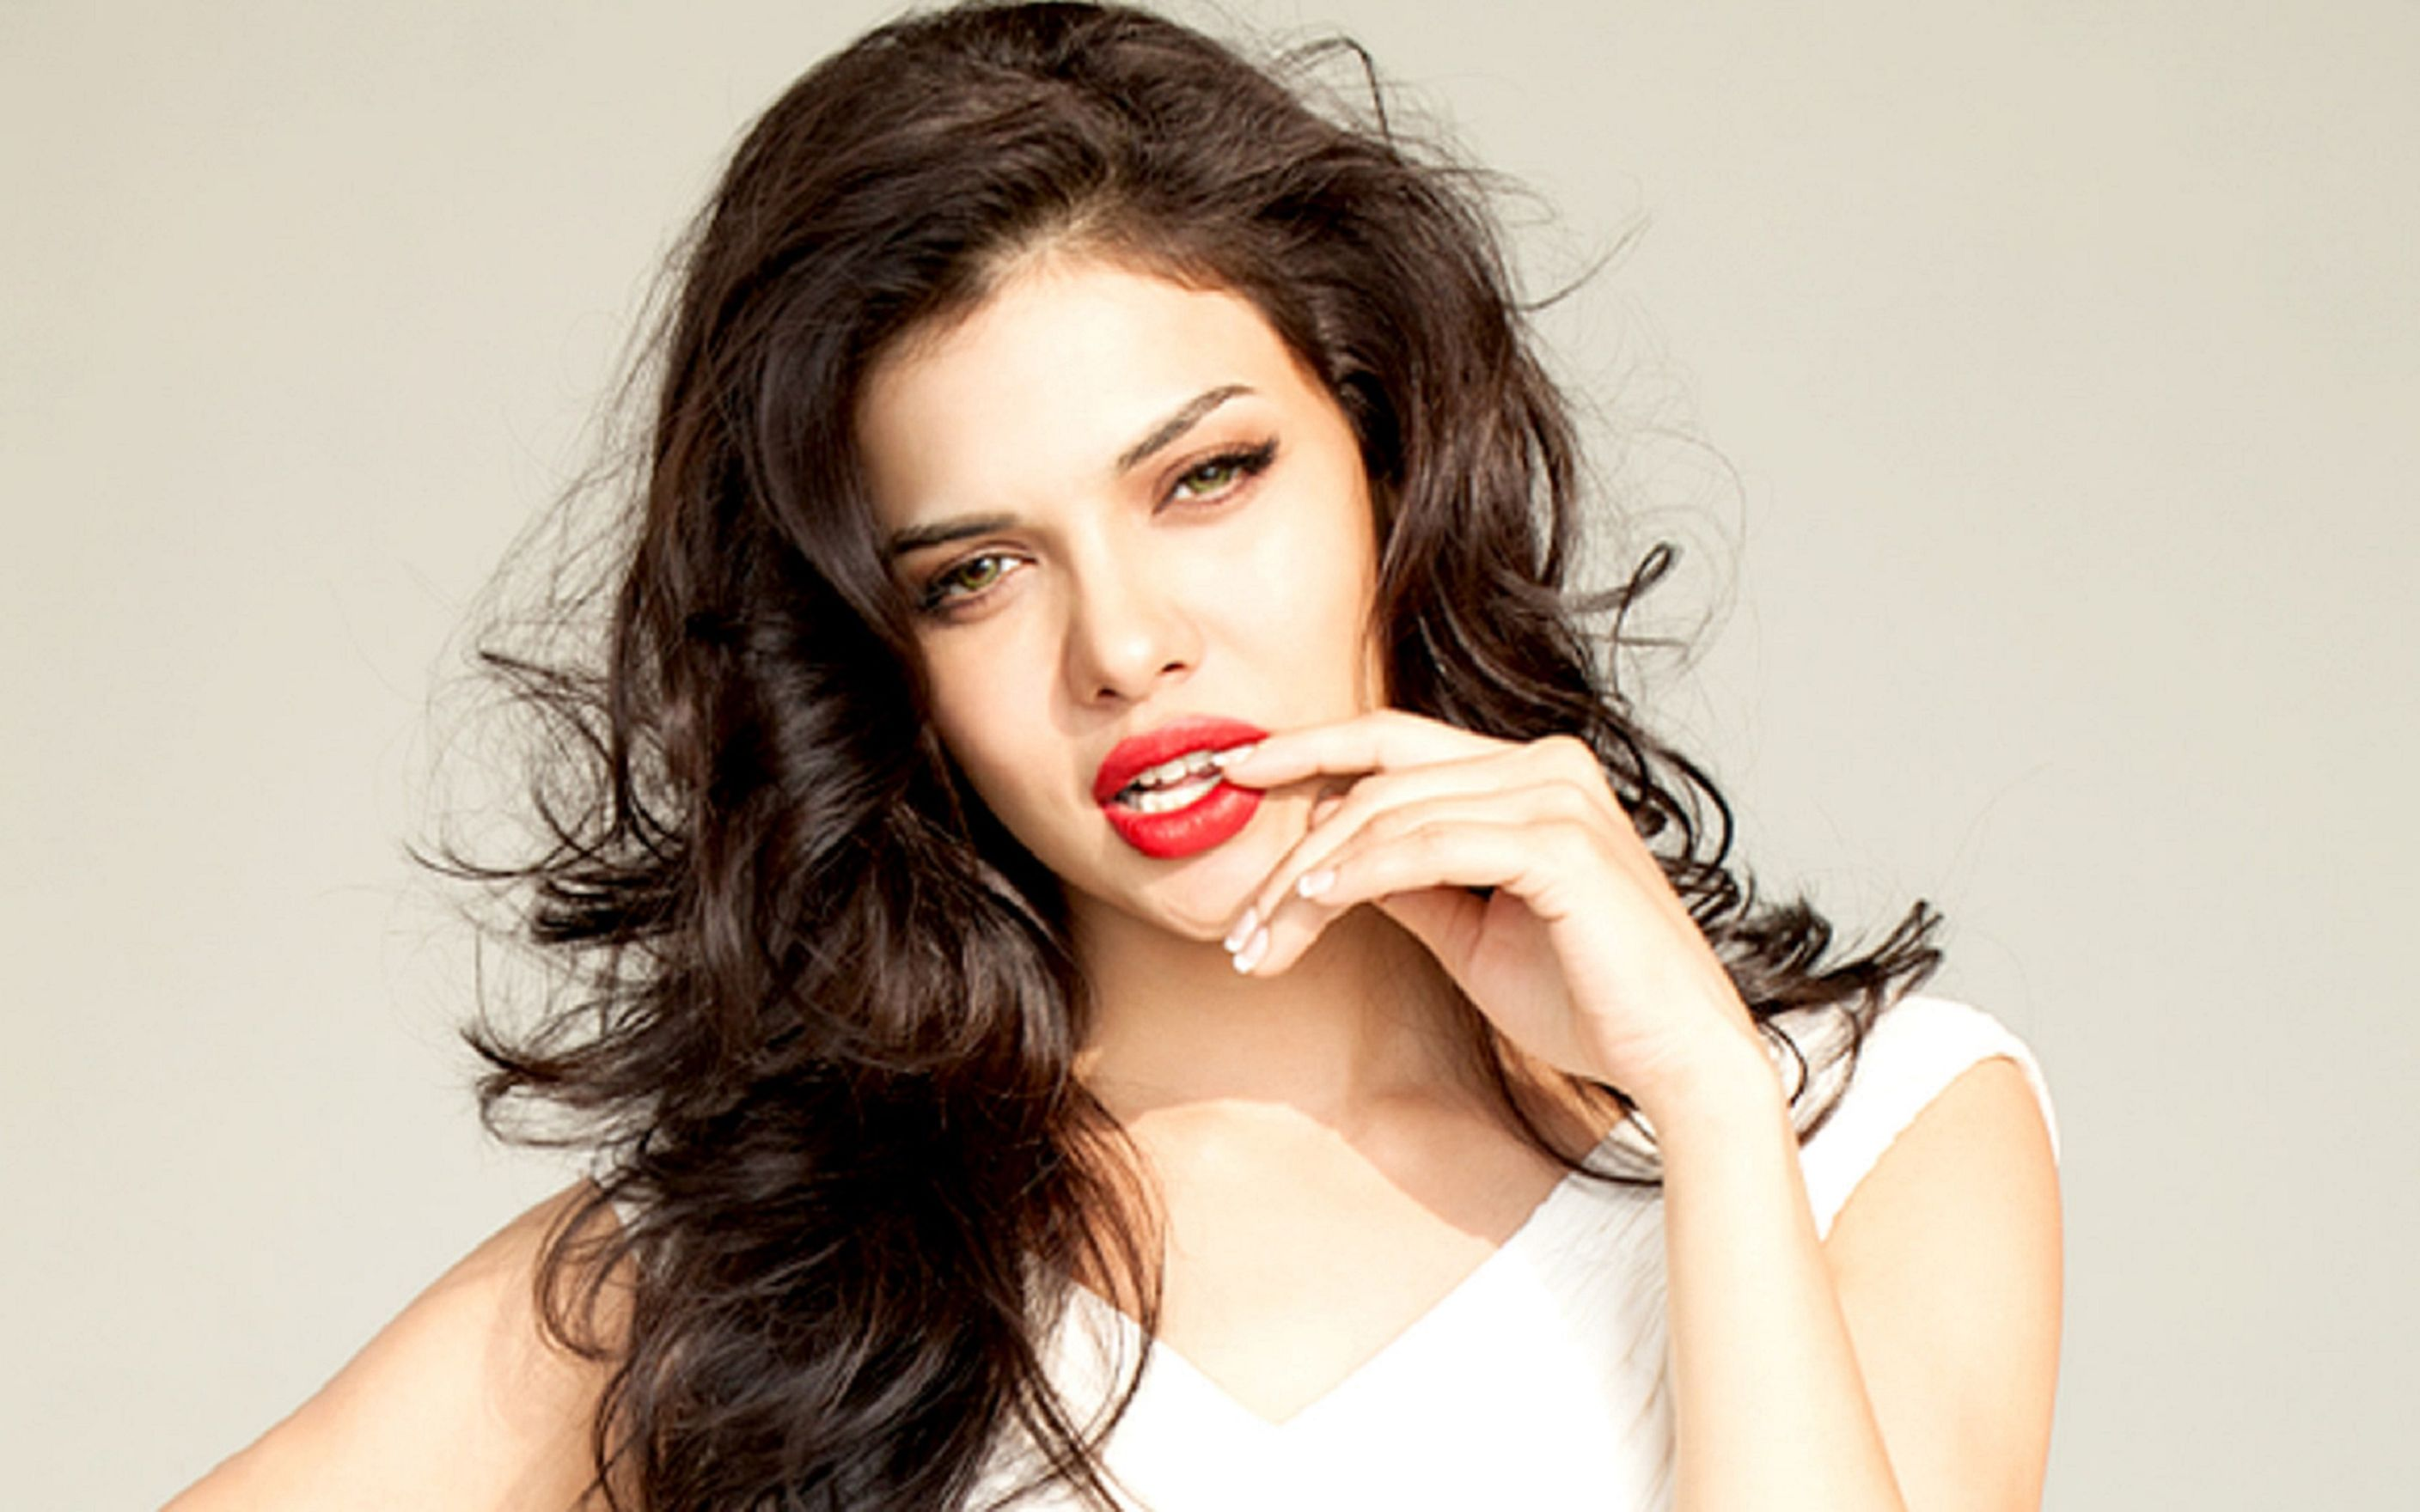 Download free HD Sara Loren HD Wallpaper, image